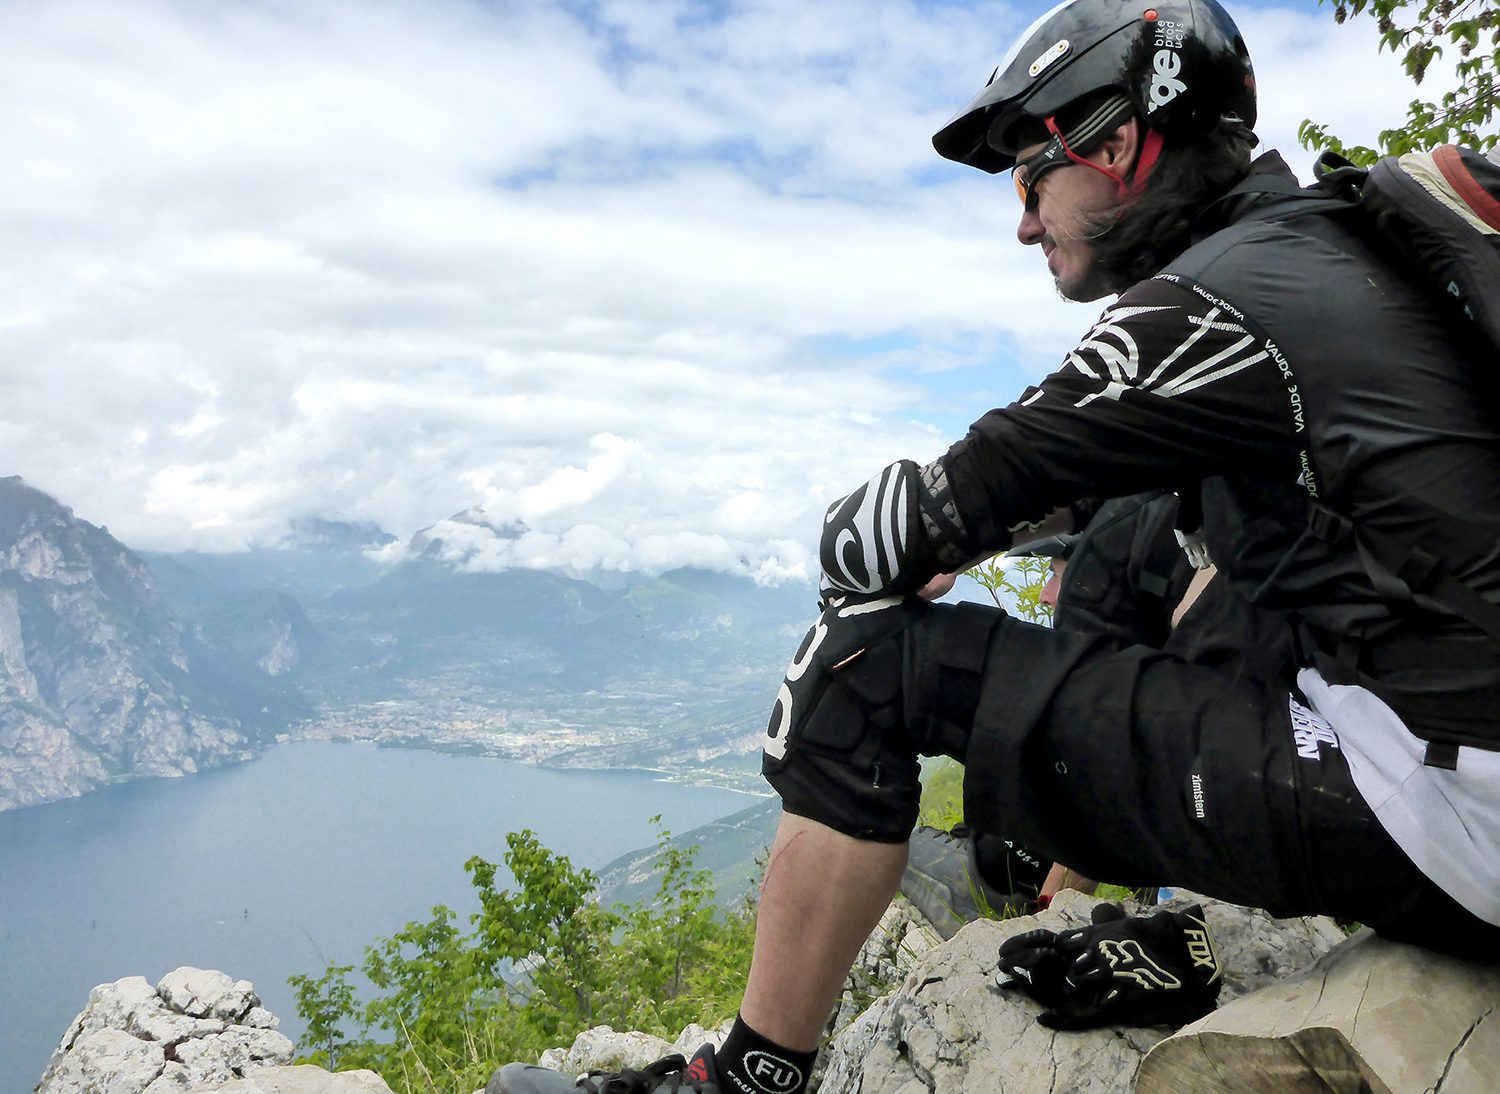 Andreas taking a break during mountain biking and enjoying his well earned view.